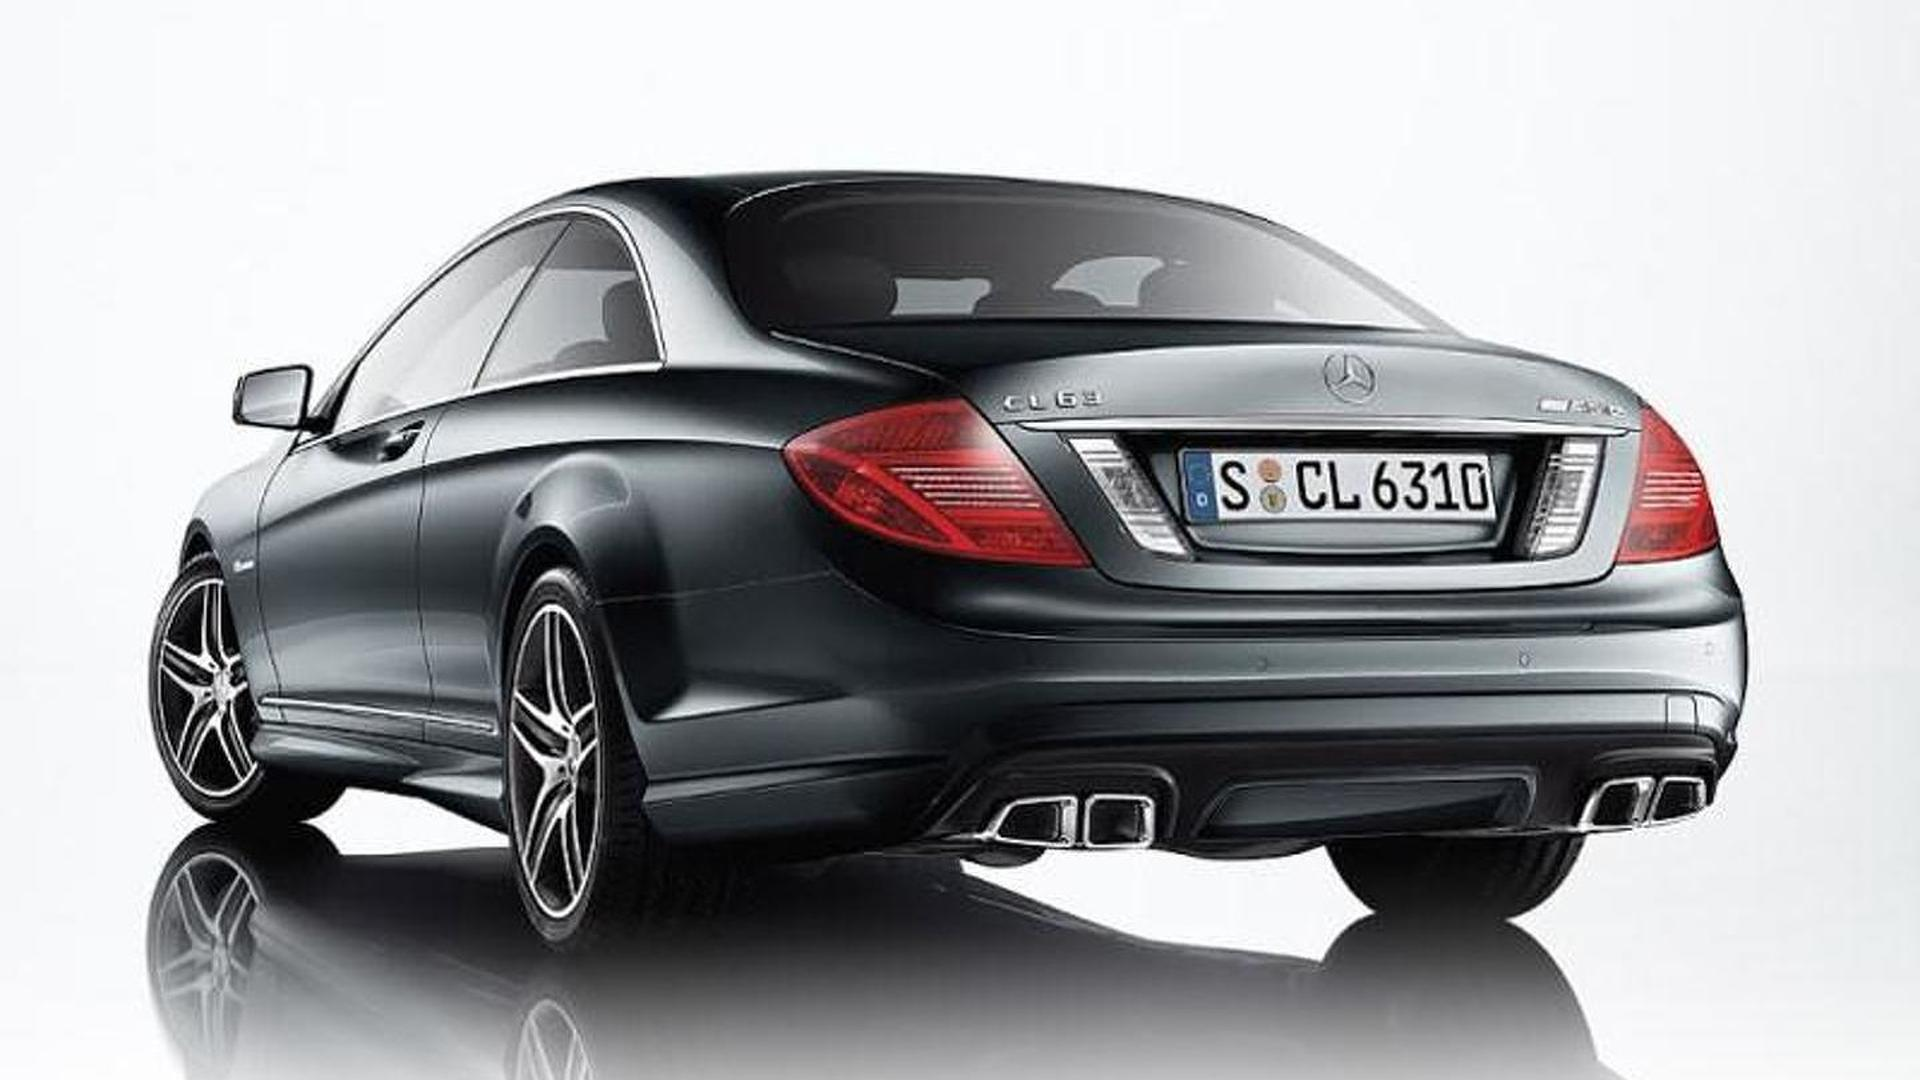 Mercedes CL65 CL63 AMG images leaked